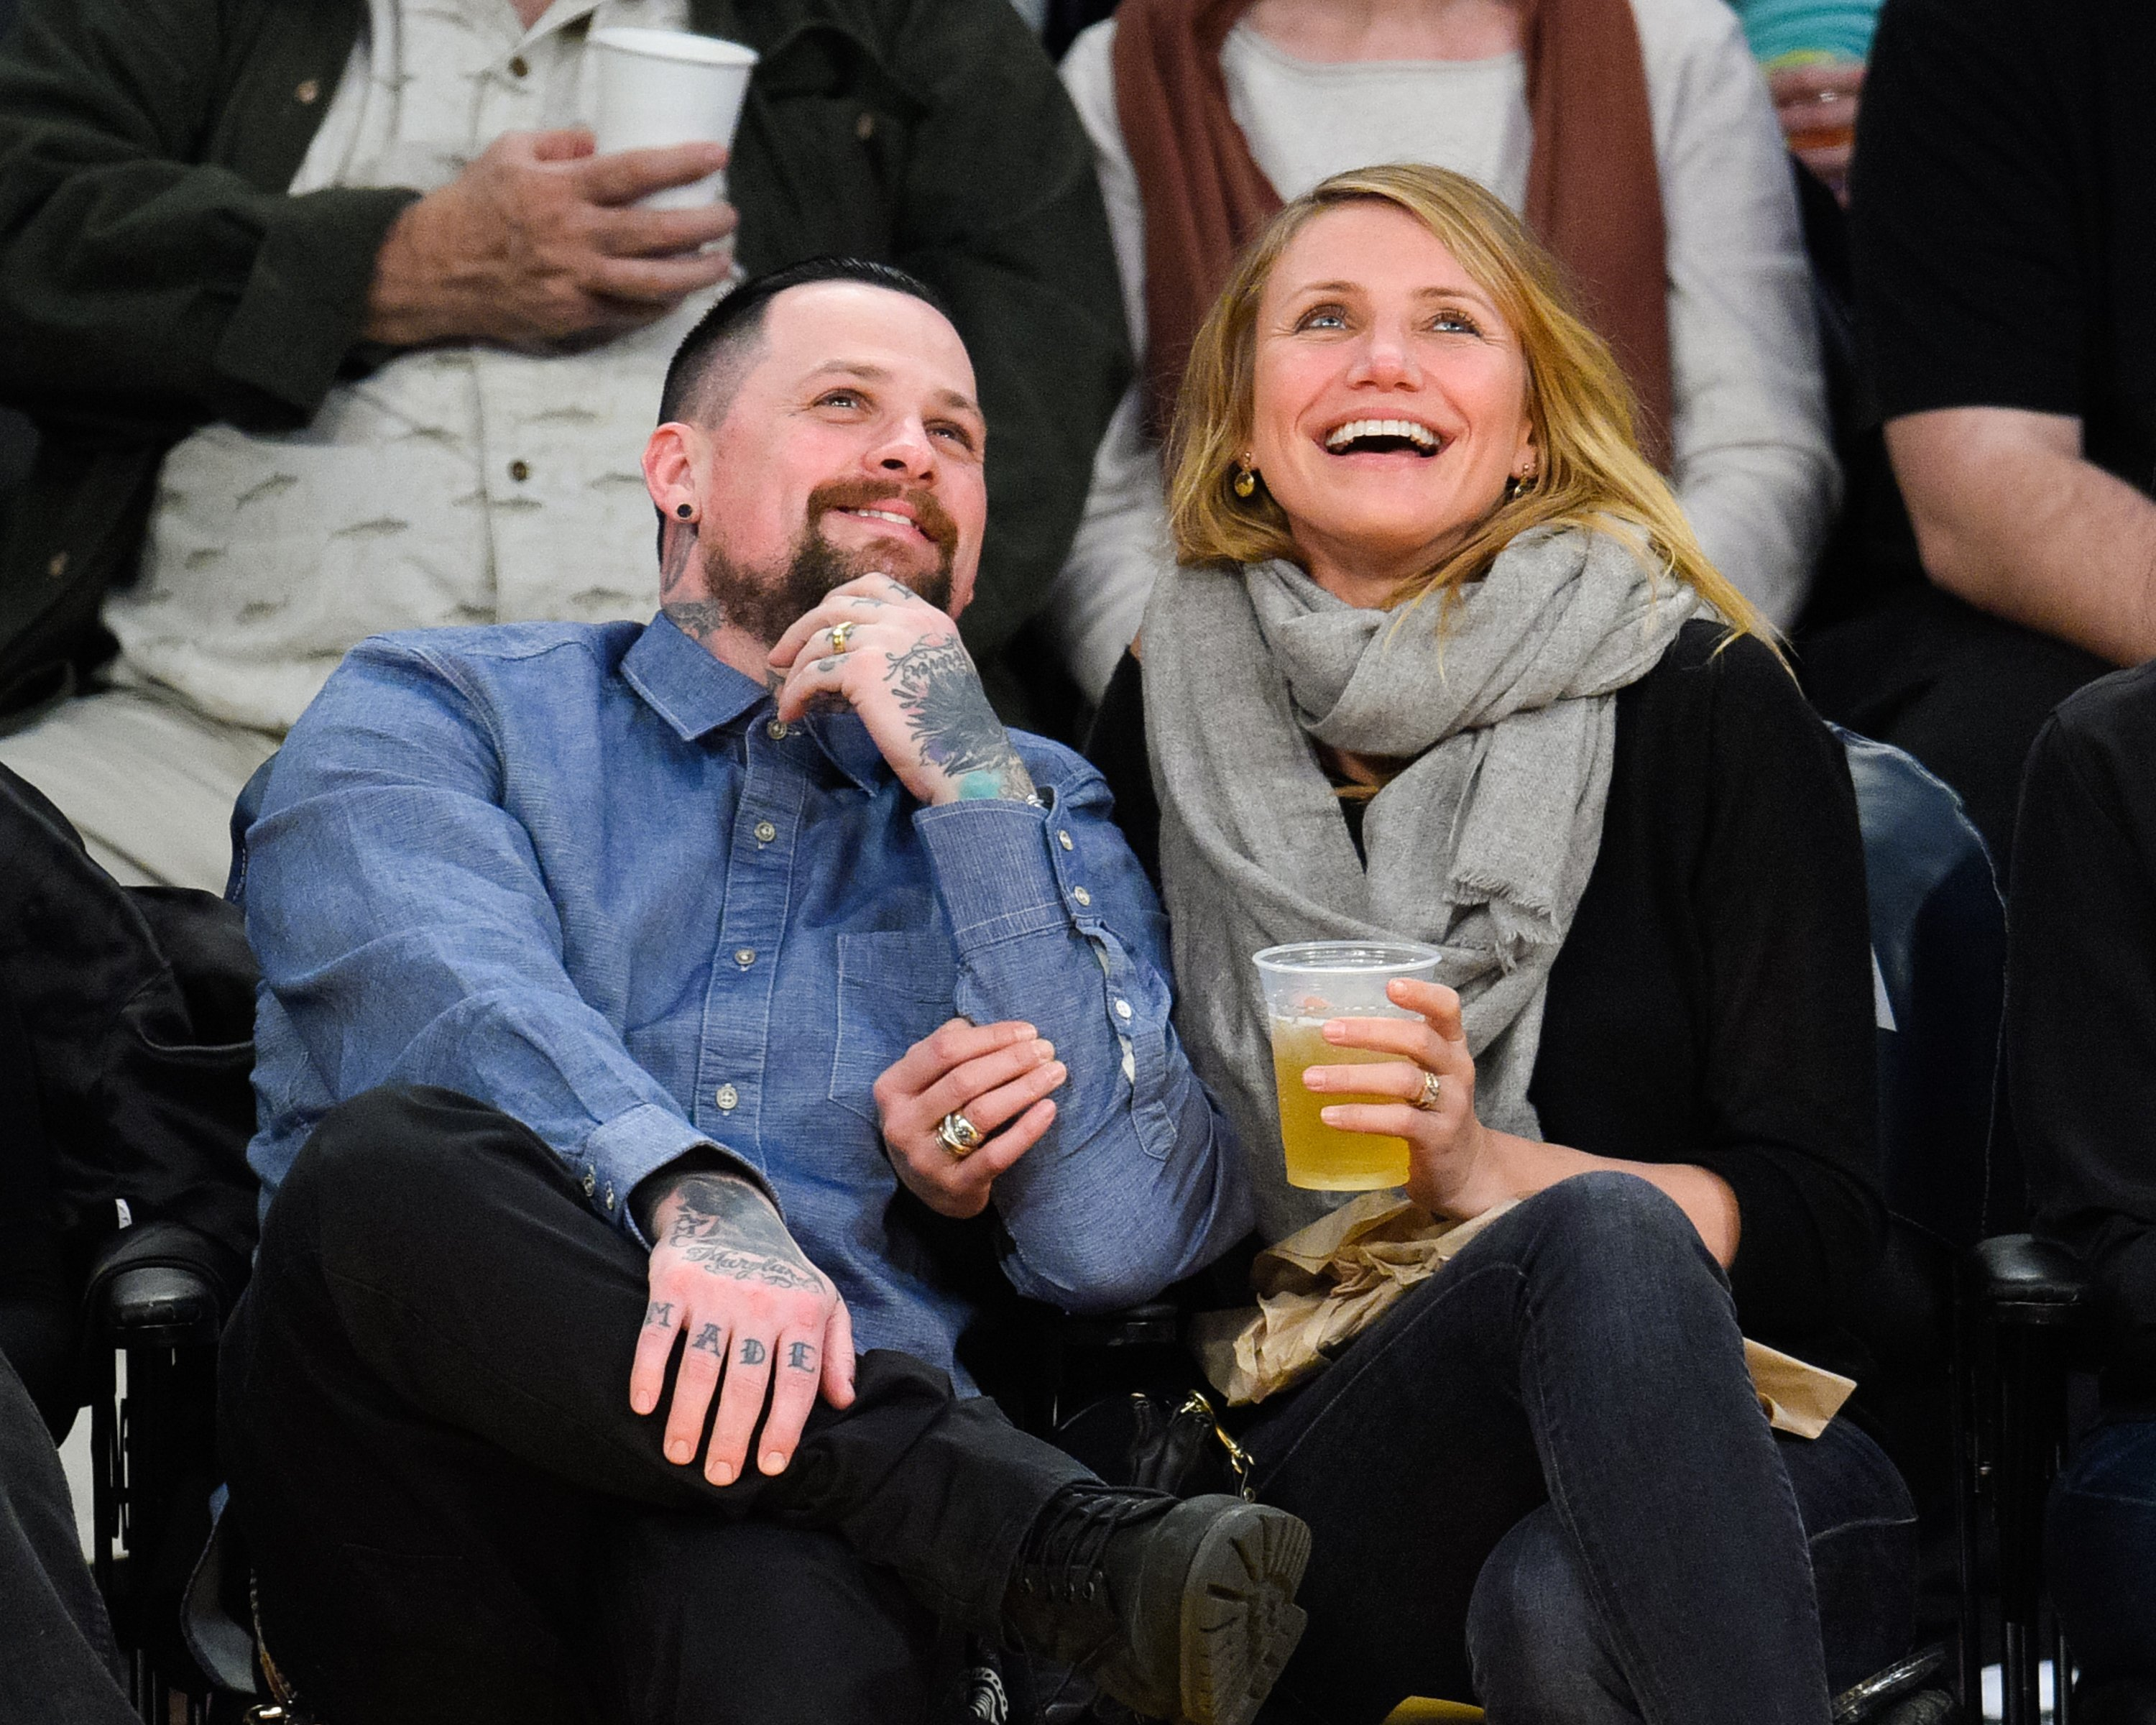 Benji Madden and Cameron Diaz attend a basketball game between the Washington Wizards and the Los Angeles Lakers at Staples Center on January 27, 2015, in Los Angeles, California. | Source: Getty Images.